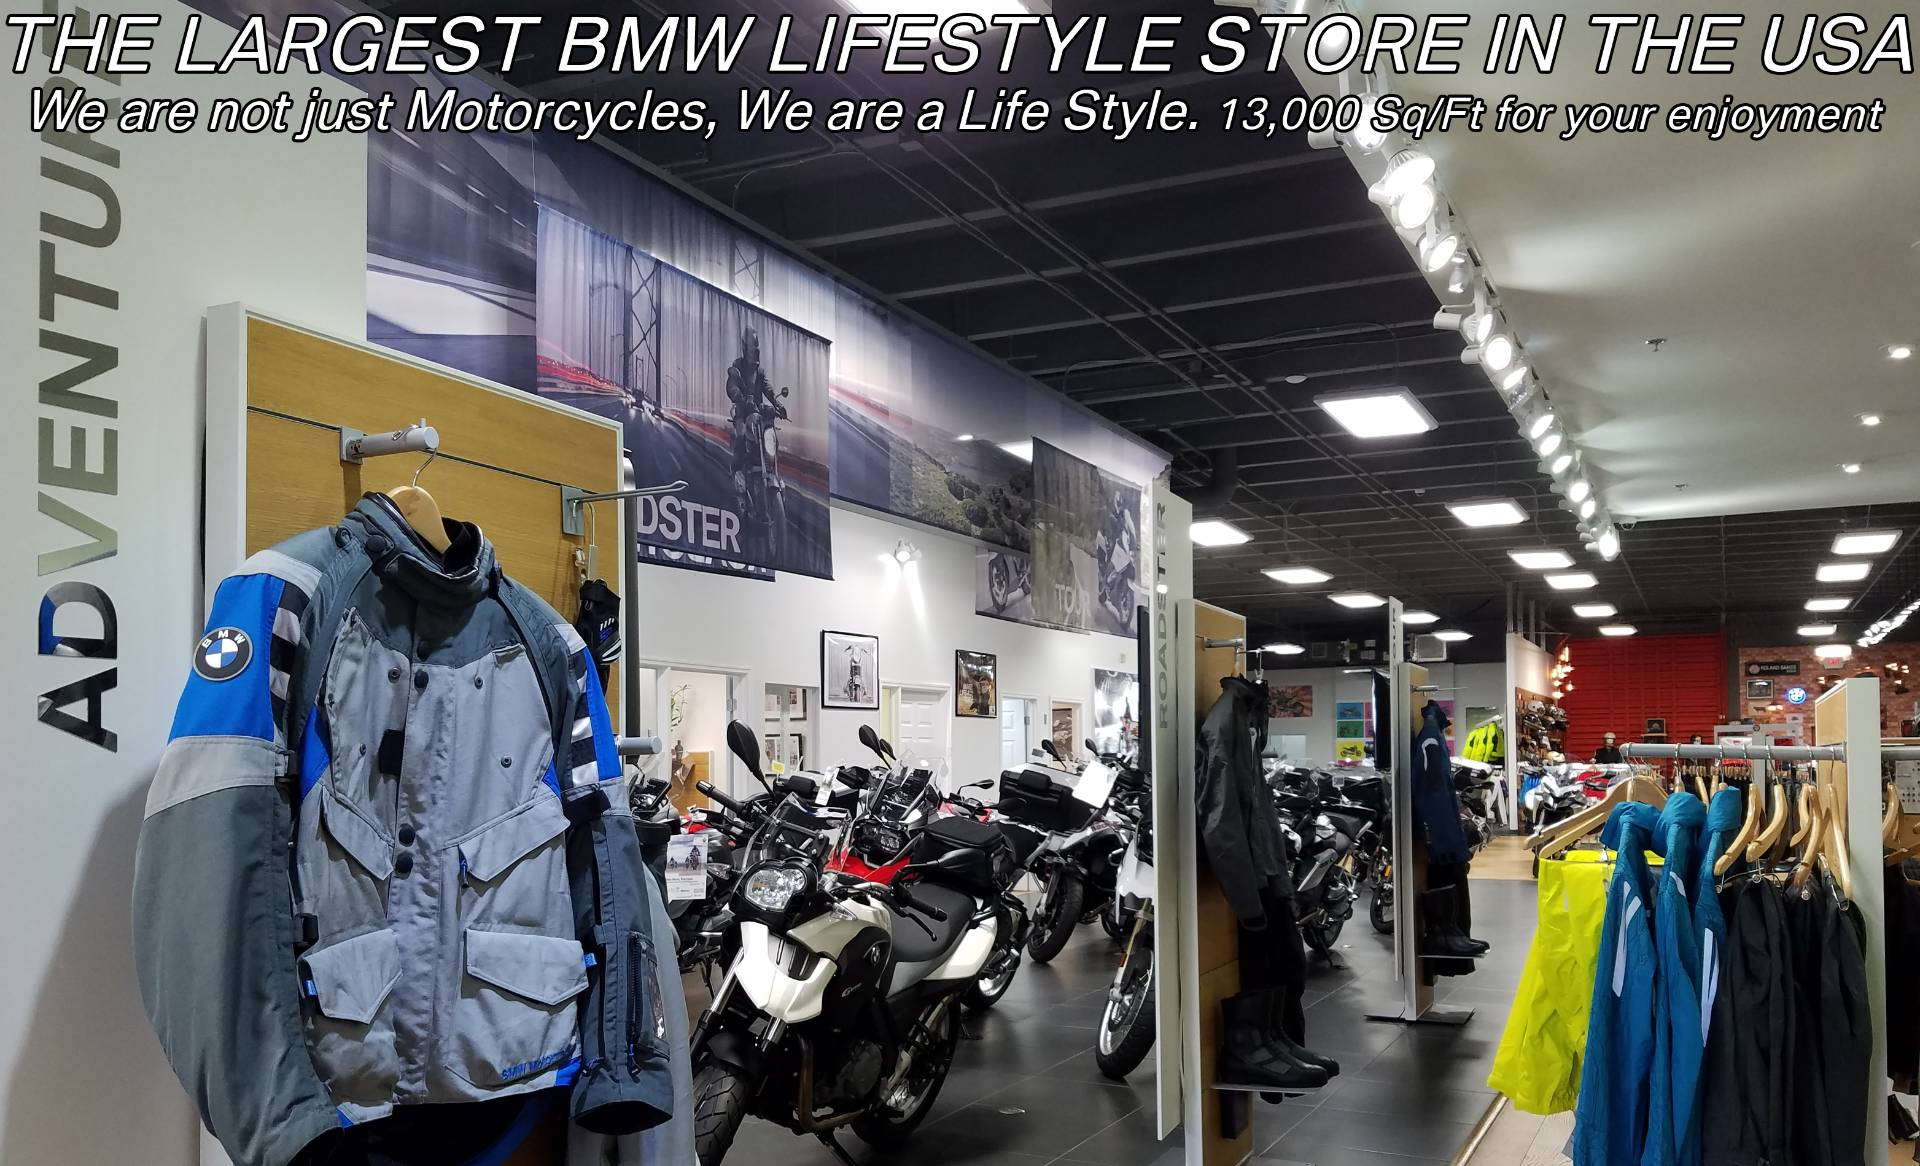 New 2019 BMW C 400 X for sale, BMW C 400X for sale, BMW Scooter, new BMW Scooter, C400X, BMW Motorcycles of Miami, Motorcycles of Miami, Motorcycles Miami, New Motorcycles, Used Motorcycles, pre-owned. #BMWMotorcyclesOfMiami #MotorcyclesOfMiami #MotorcyclesMiami - Photo 42